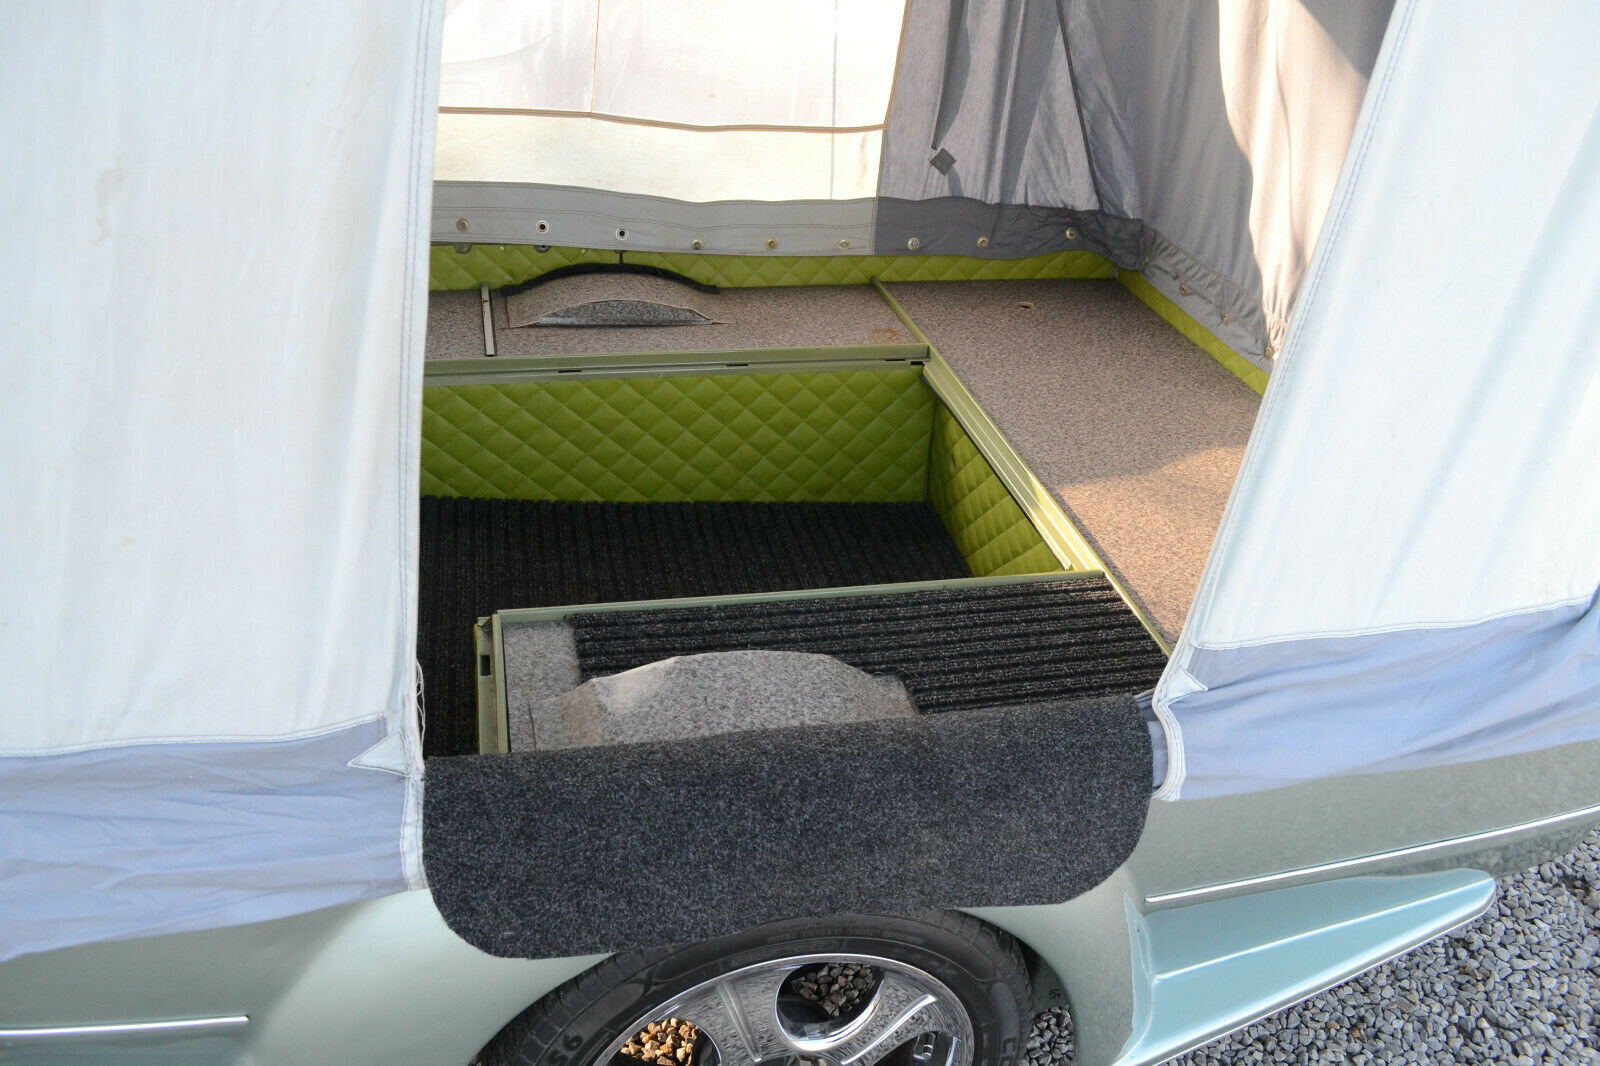 1984 Volkswagen Beetle Cabrio + tent trailer For Sale (picture 2 of 6)